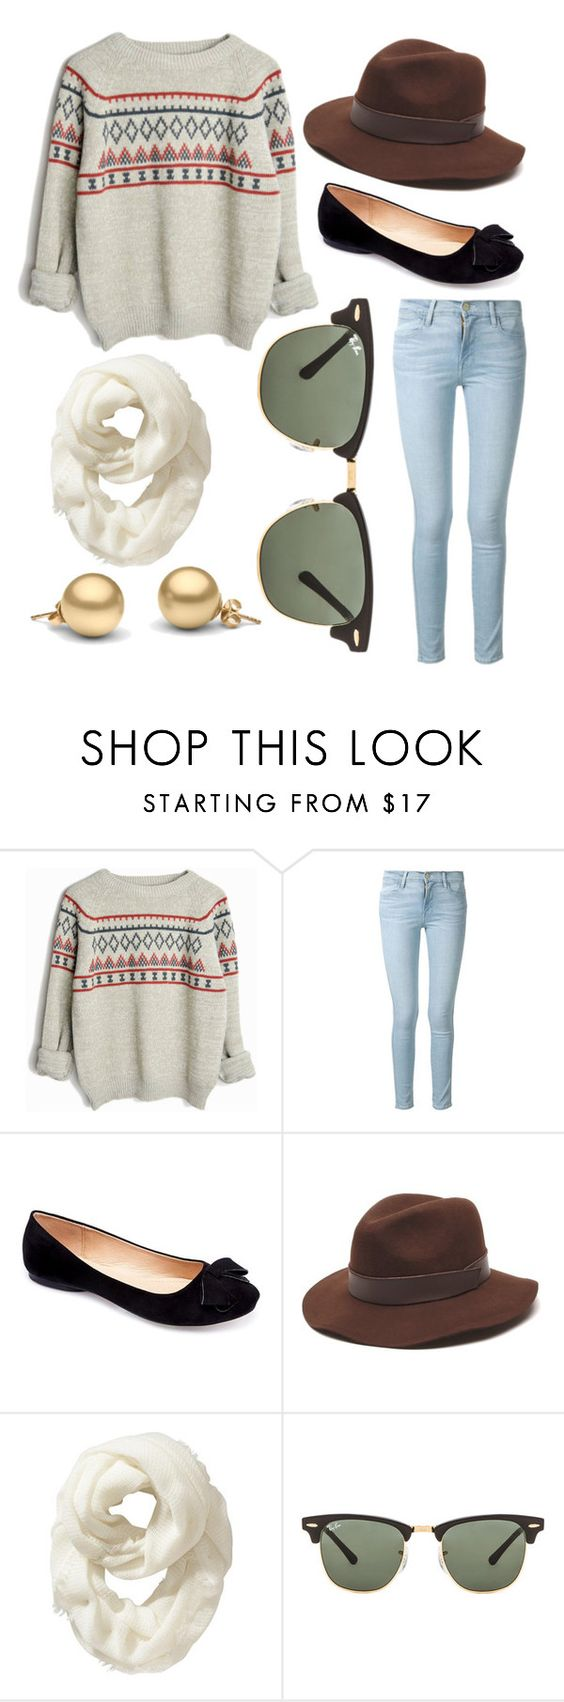 """Thanksgiving"" by pmolly on Polyvore featuring Frame Denim, Machi, Gottex, Old Navy and Ray-Ban"